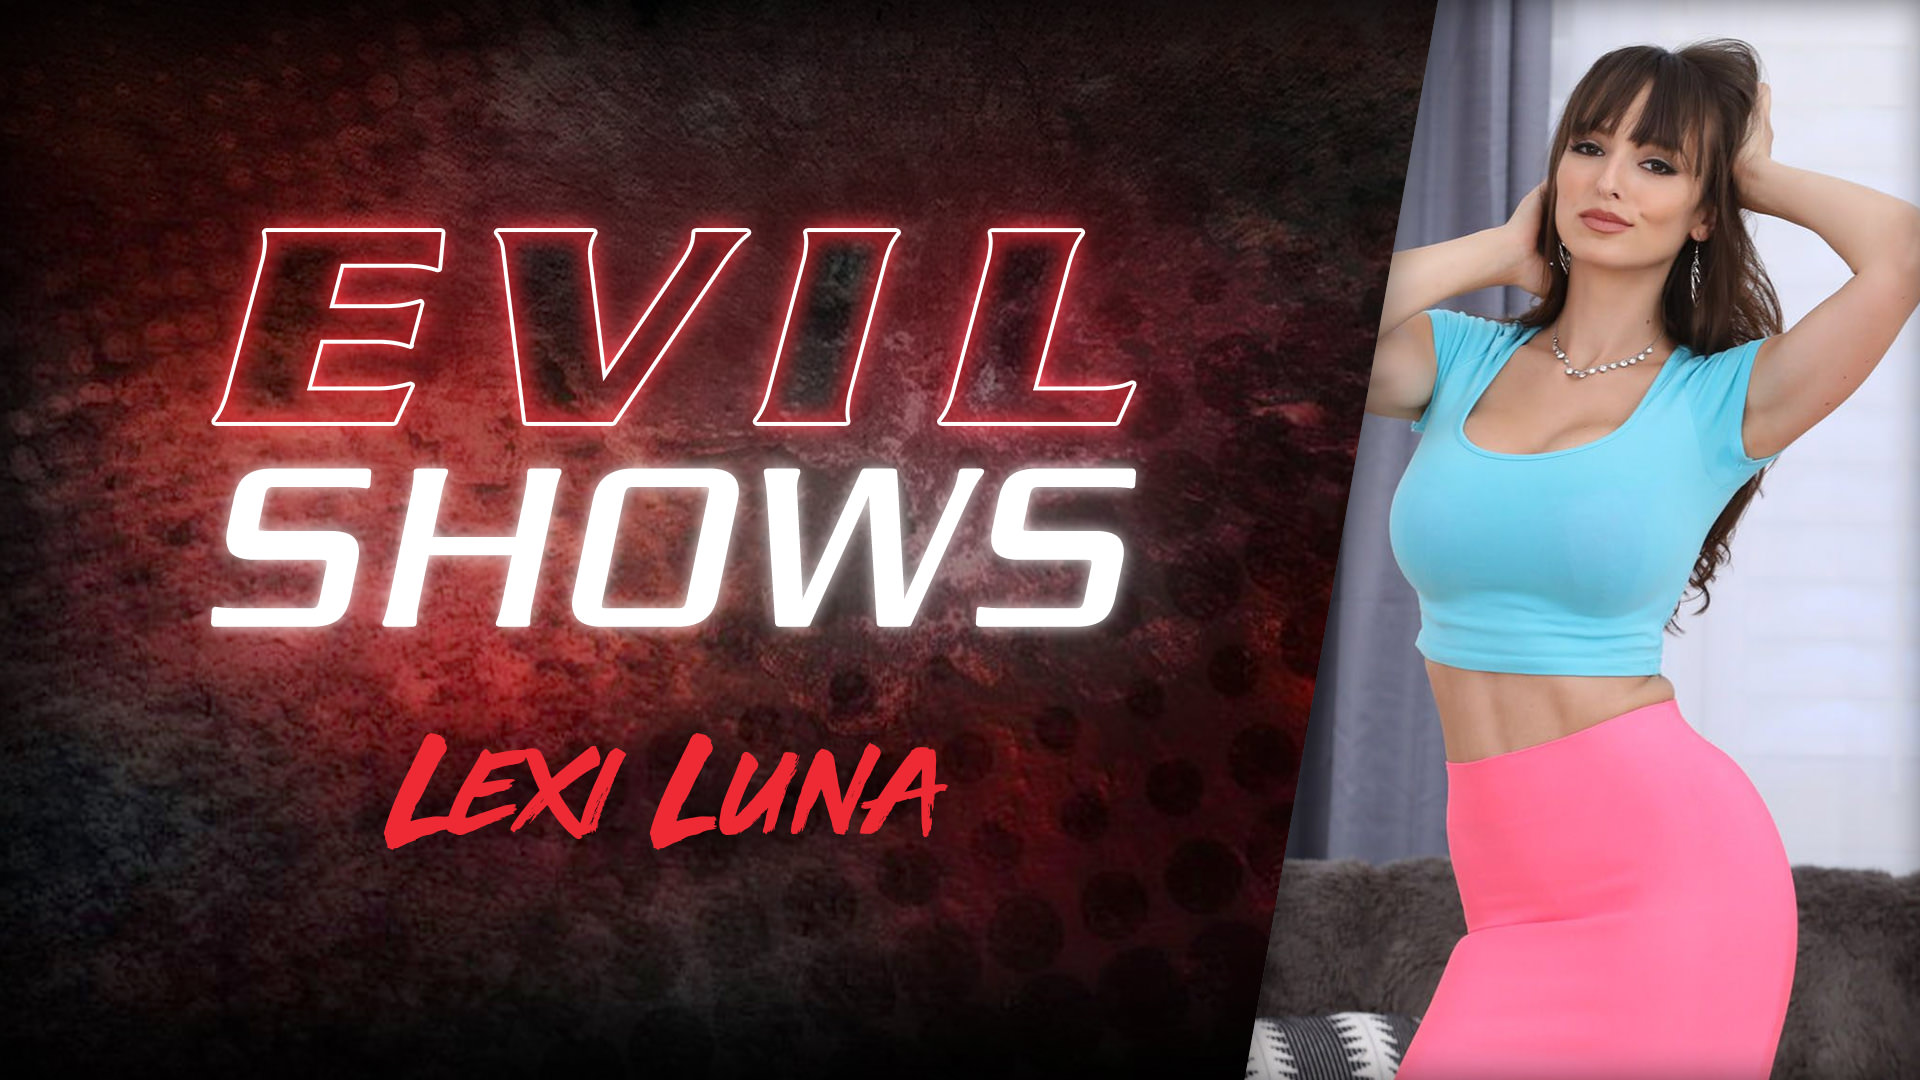 Evil Shows - Lexi Luna - Lexi Luna 1